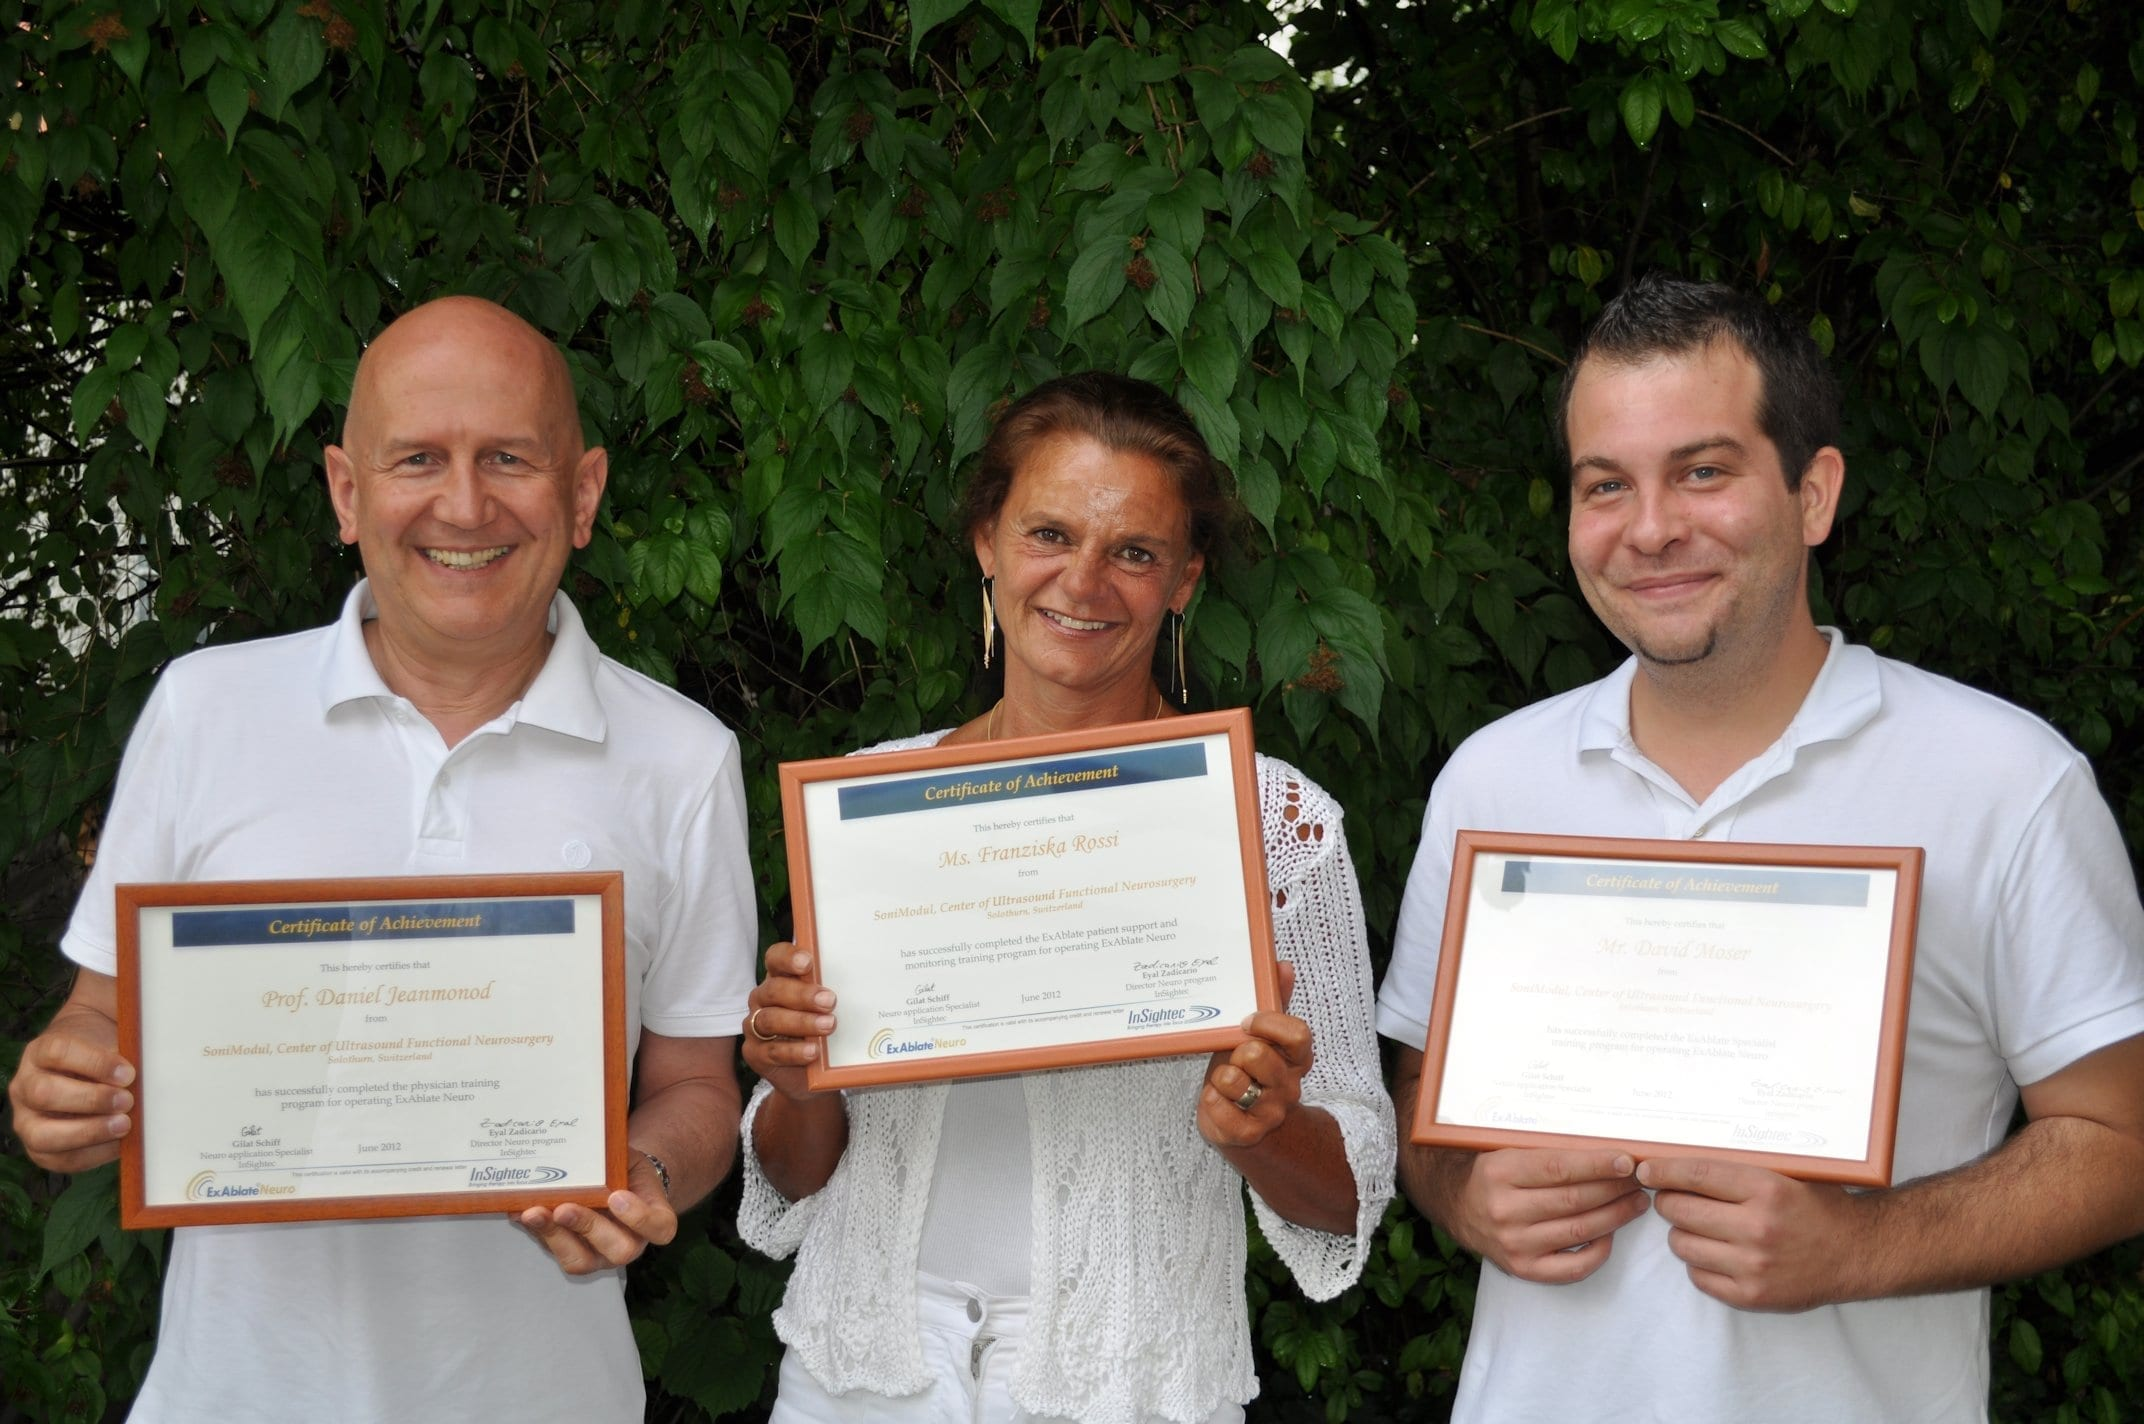 SoniModul - The first team to get the InSightec certification for standalone treatments